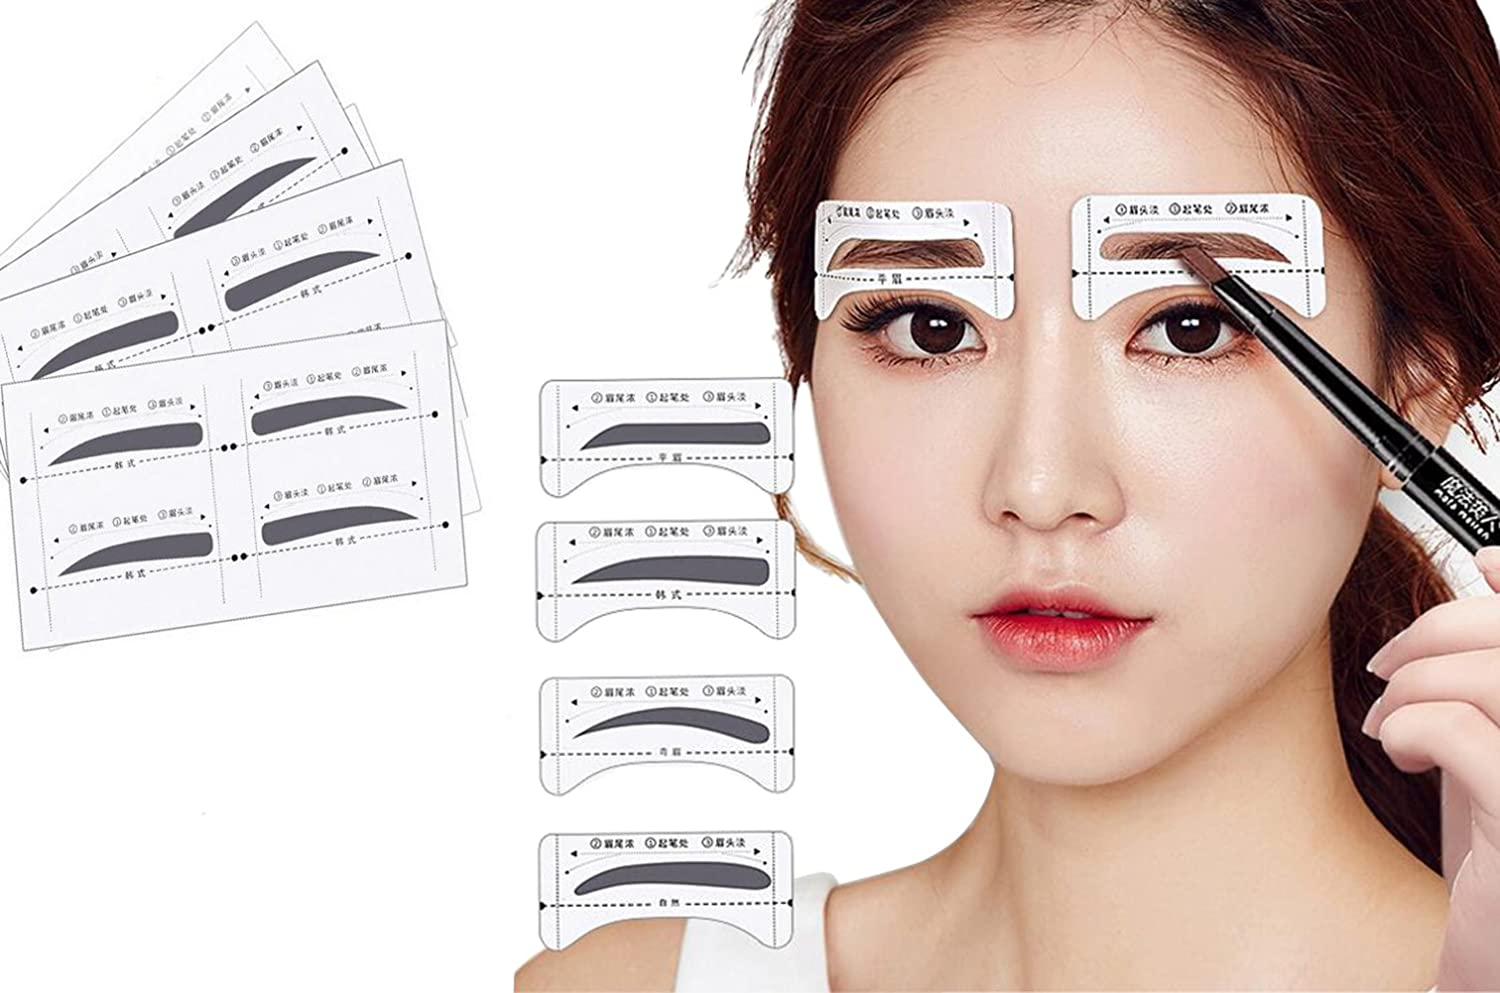 32 paia 4 Differnet stili sopracciglio Drawingthrush di sopracciglia Shaper SHAPING Stencils Grooming kit makeup supply template Acccessories fai da te per trucco sopracciglia sticker per Womean Lady Girls Upstore